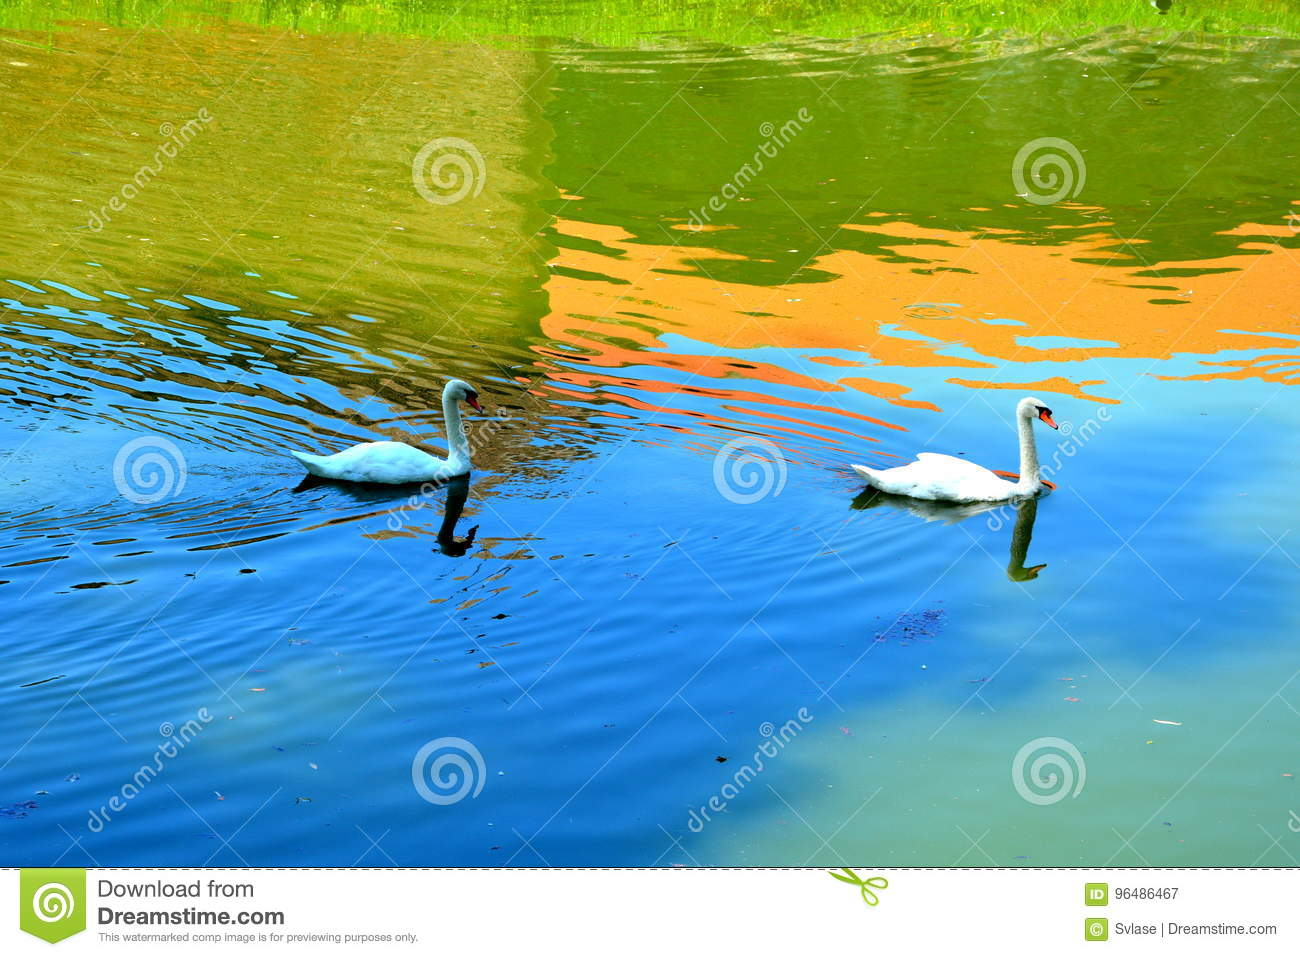 Swans and Water channel in the old medieval fortress of the city Fagaras, Brasov county